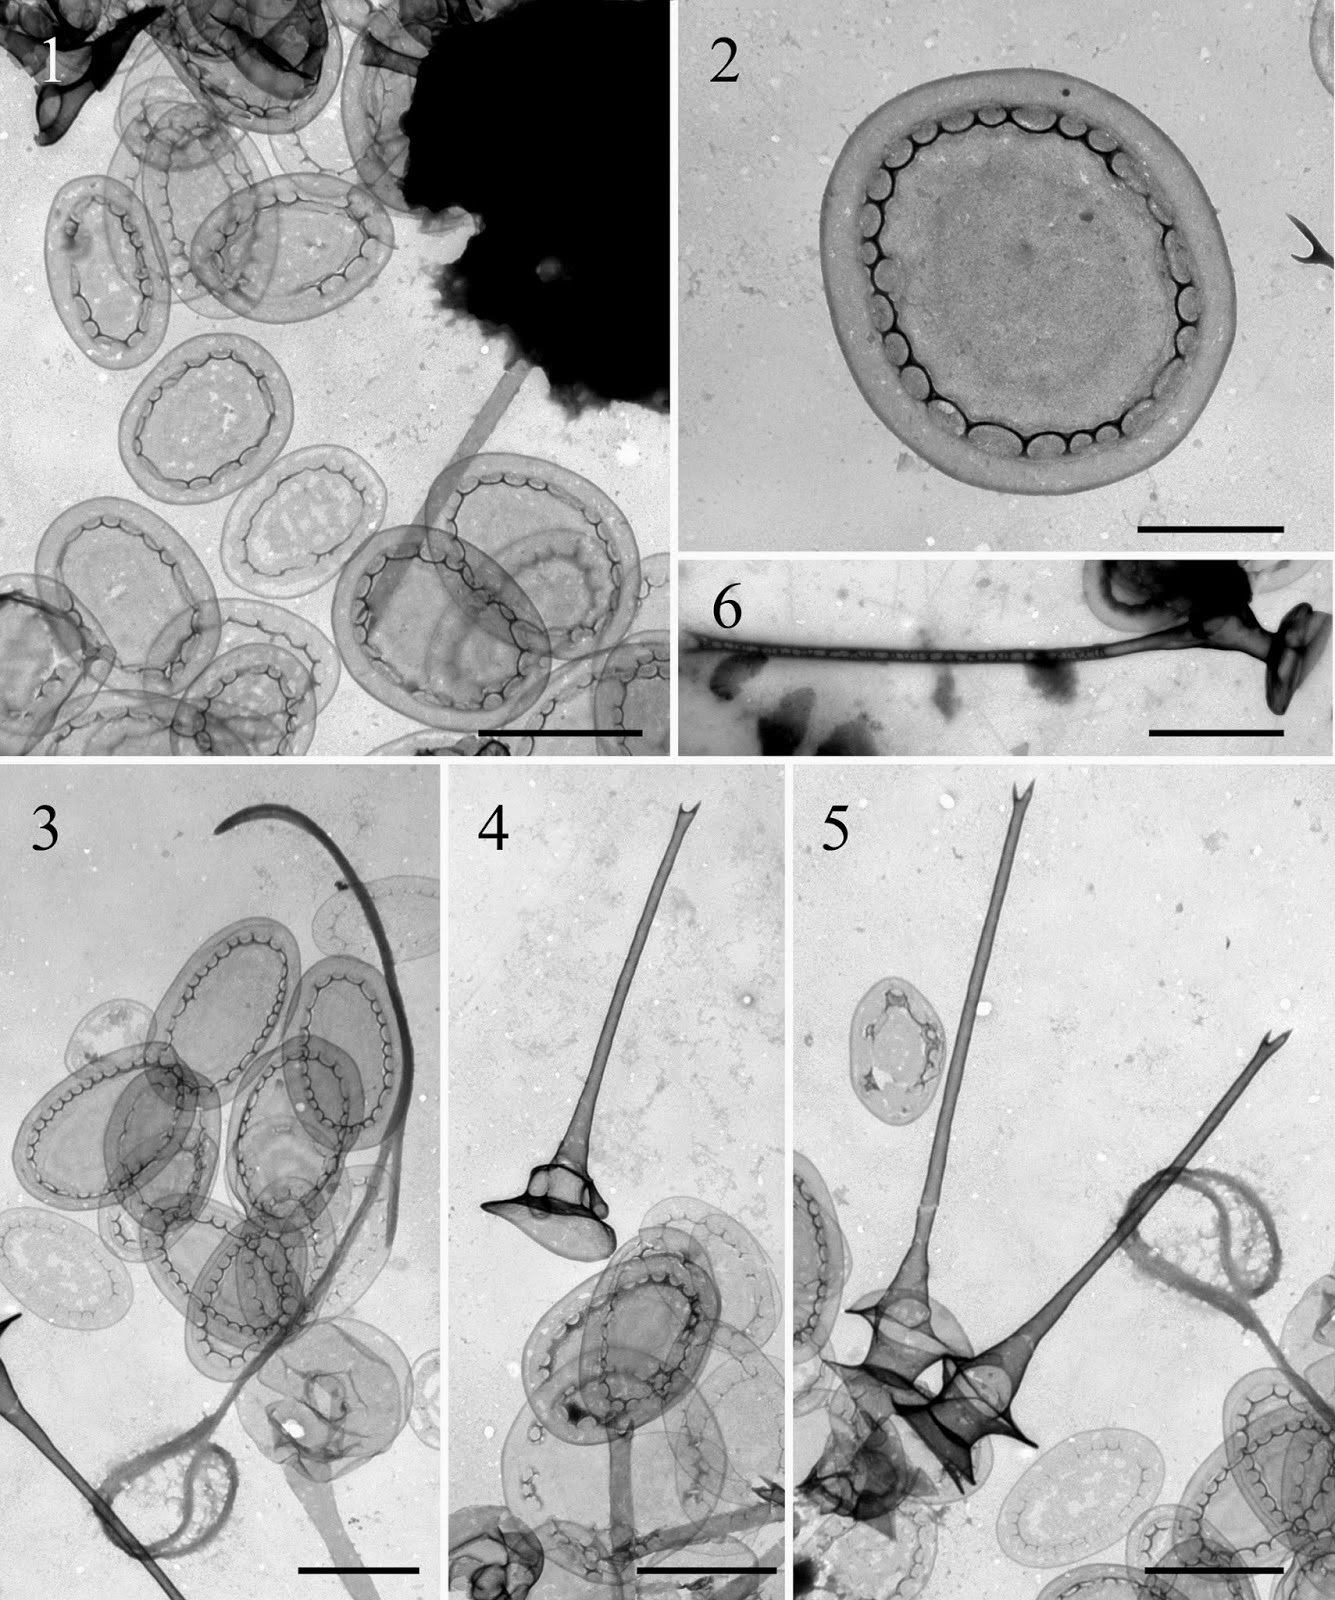 http://sciencythoughts.blogspot.co.uk/2014/03/a-new-species-of-golden-algae-from.html